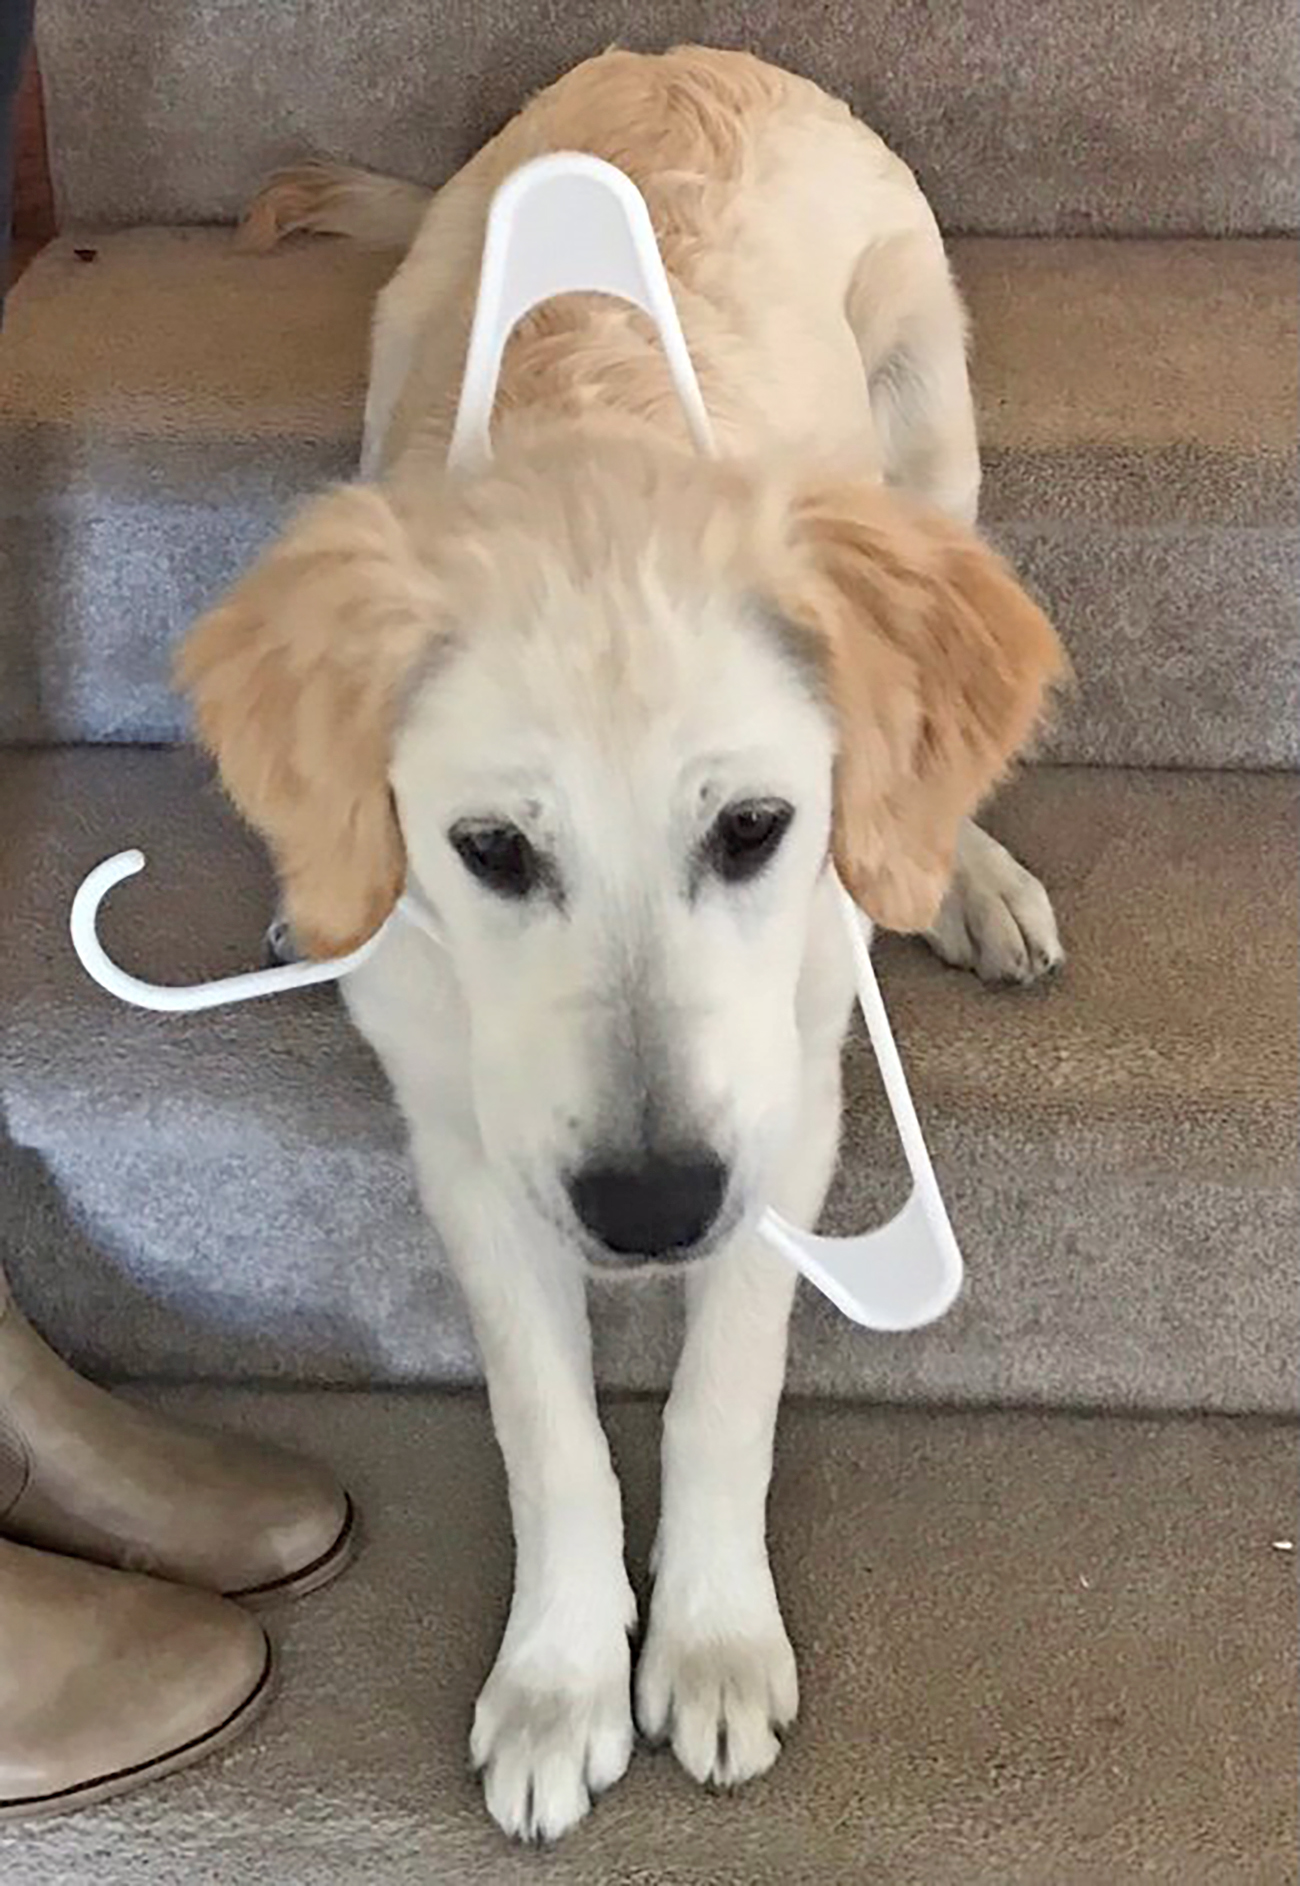 Large blond dog wears plastic clothes hanger on head